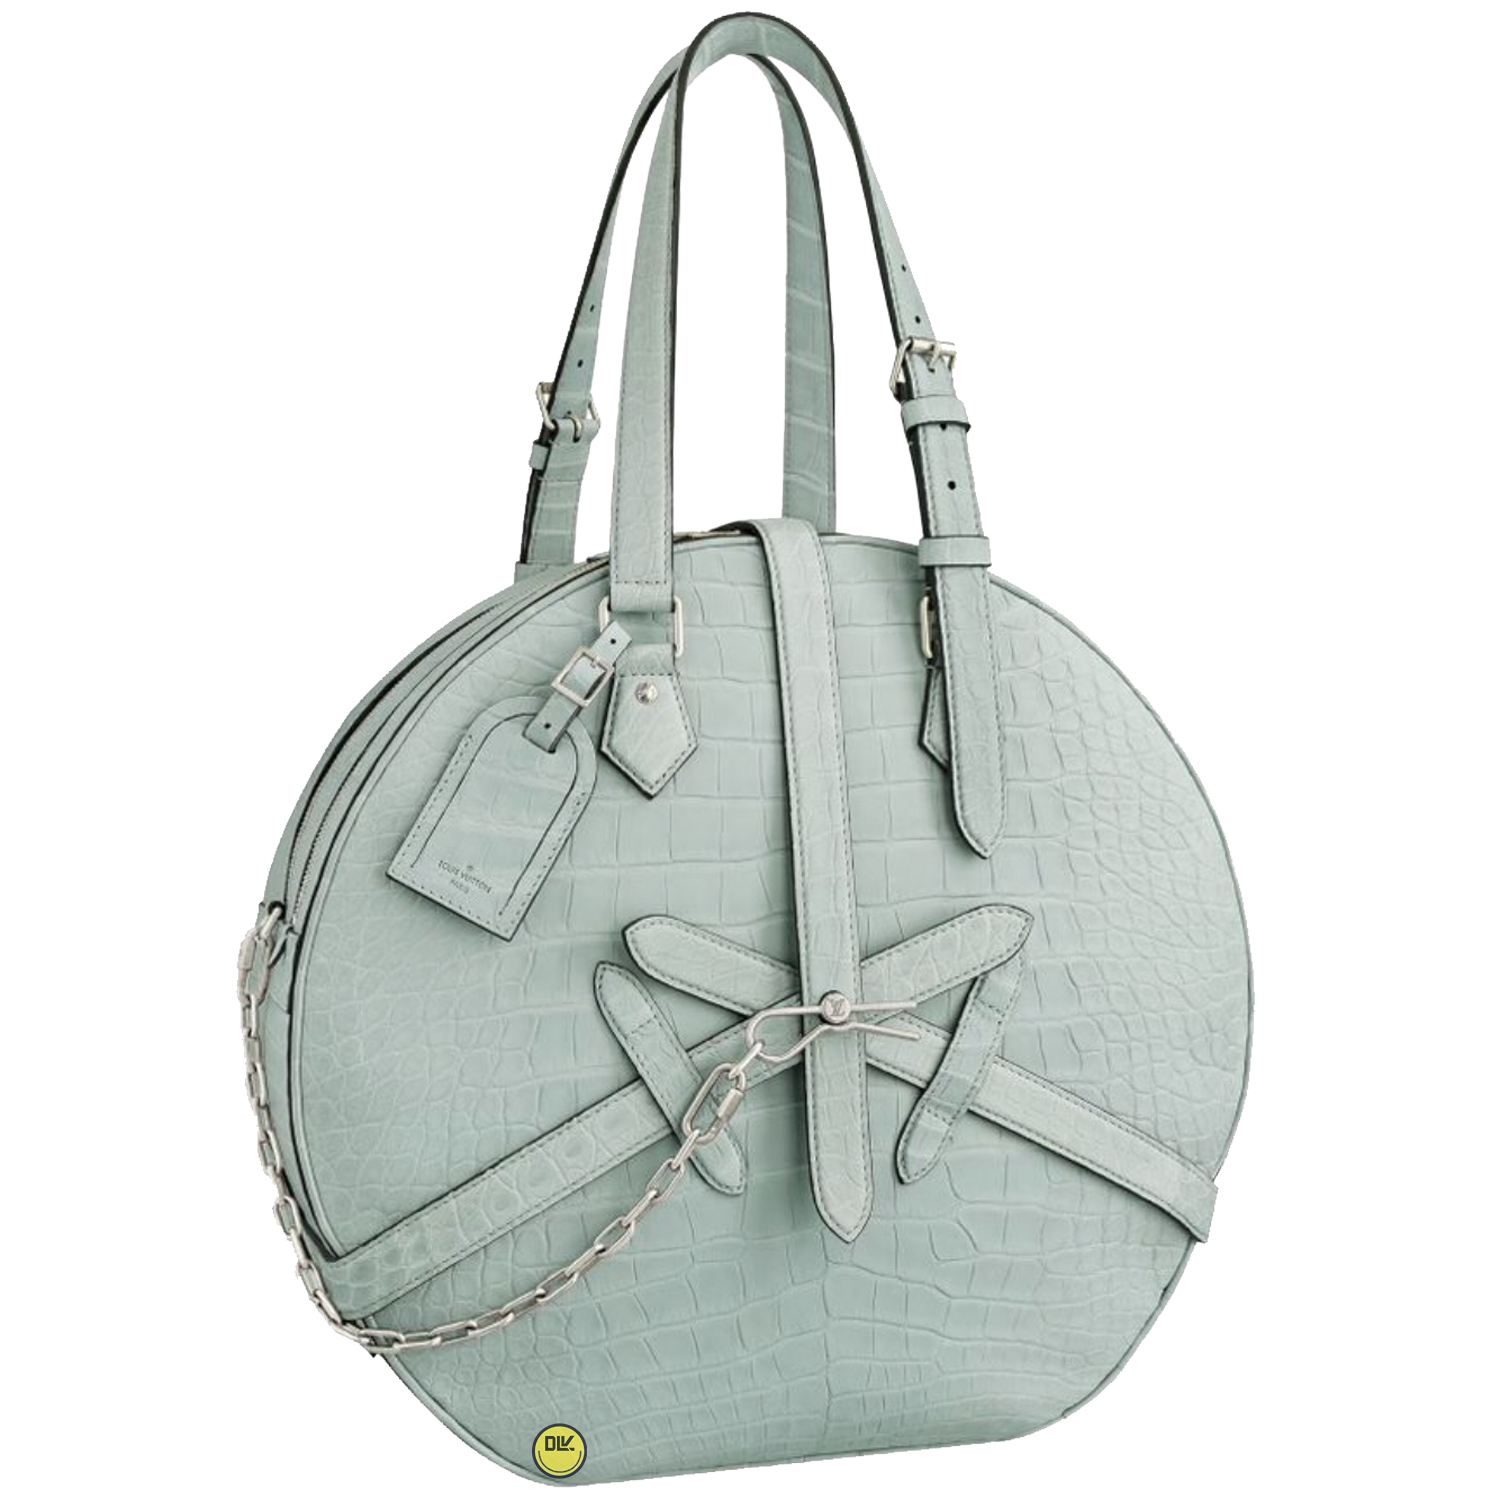 SOFT HAT TRUNK - €60,000 $89,000N96854croco gris